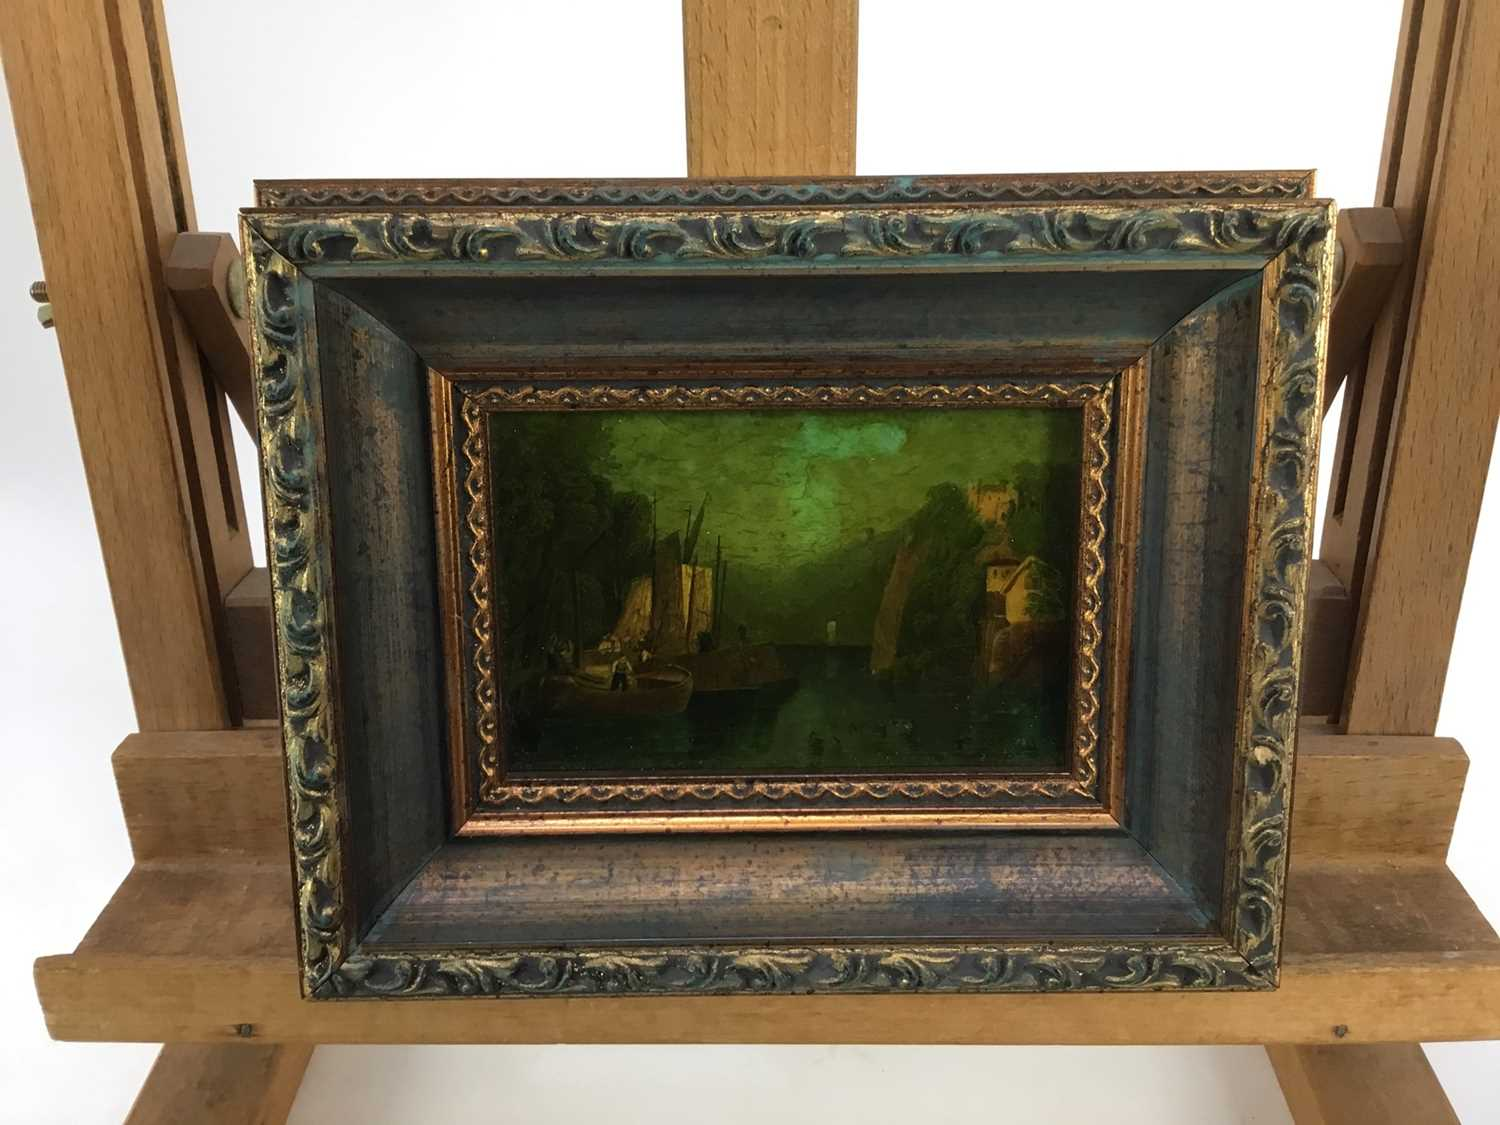 Jenny Simpson (1931-2020), Georgian-style glass pictures, framed and glazed - eight mixed pictures - Image 6 of 11